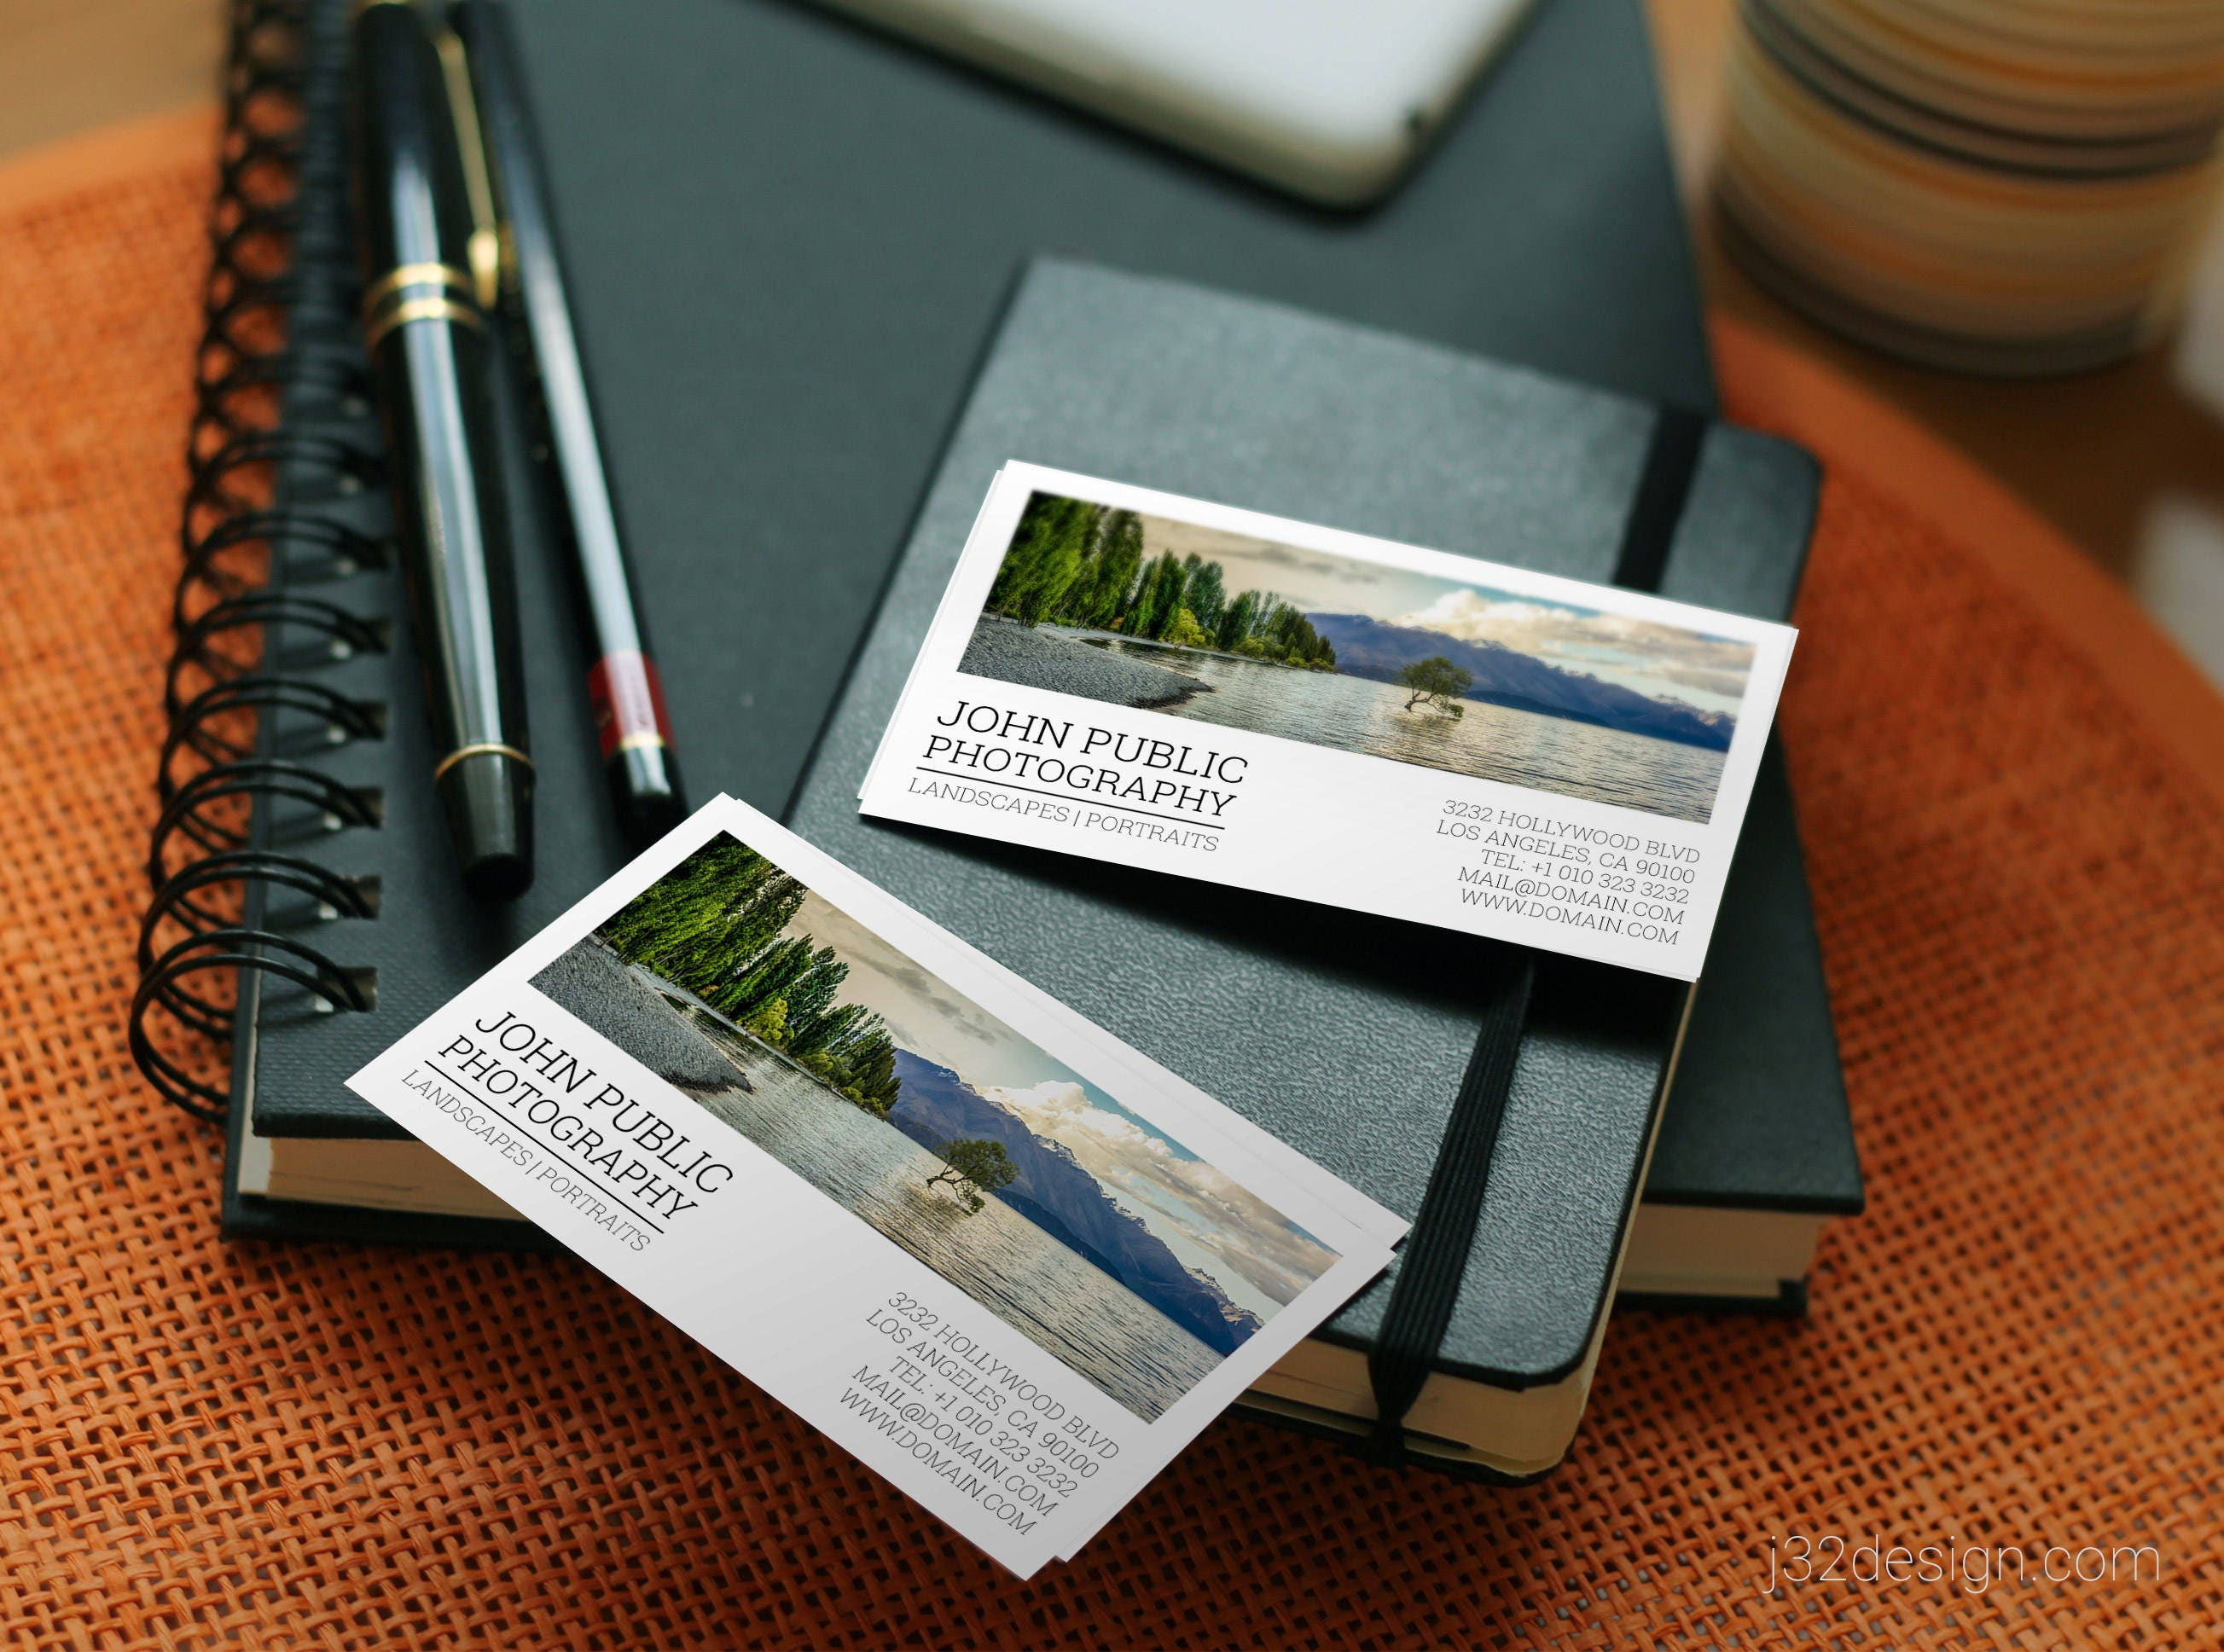 Photographer business cards template psd instant download photographer business cards template psd instant download portrait landscape photographers flashek Image collections